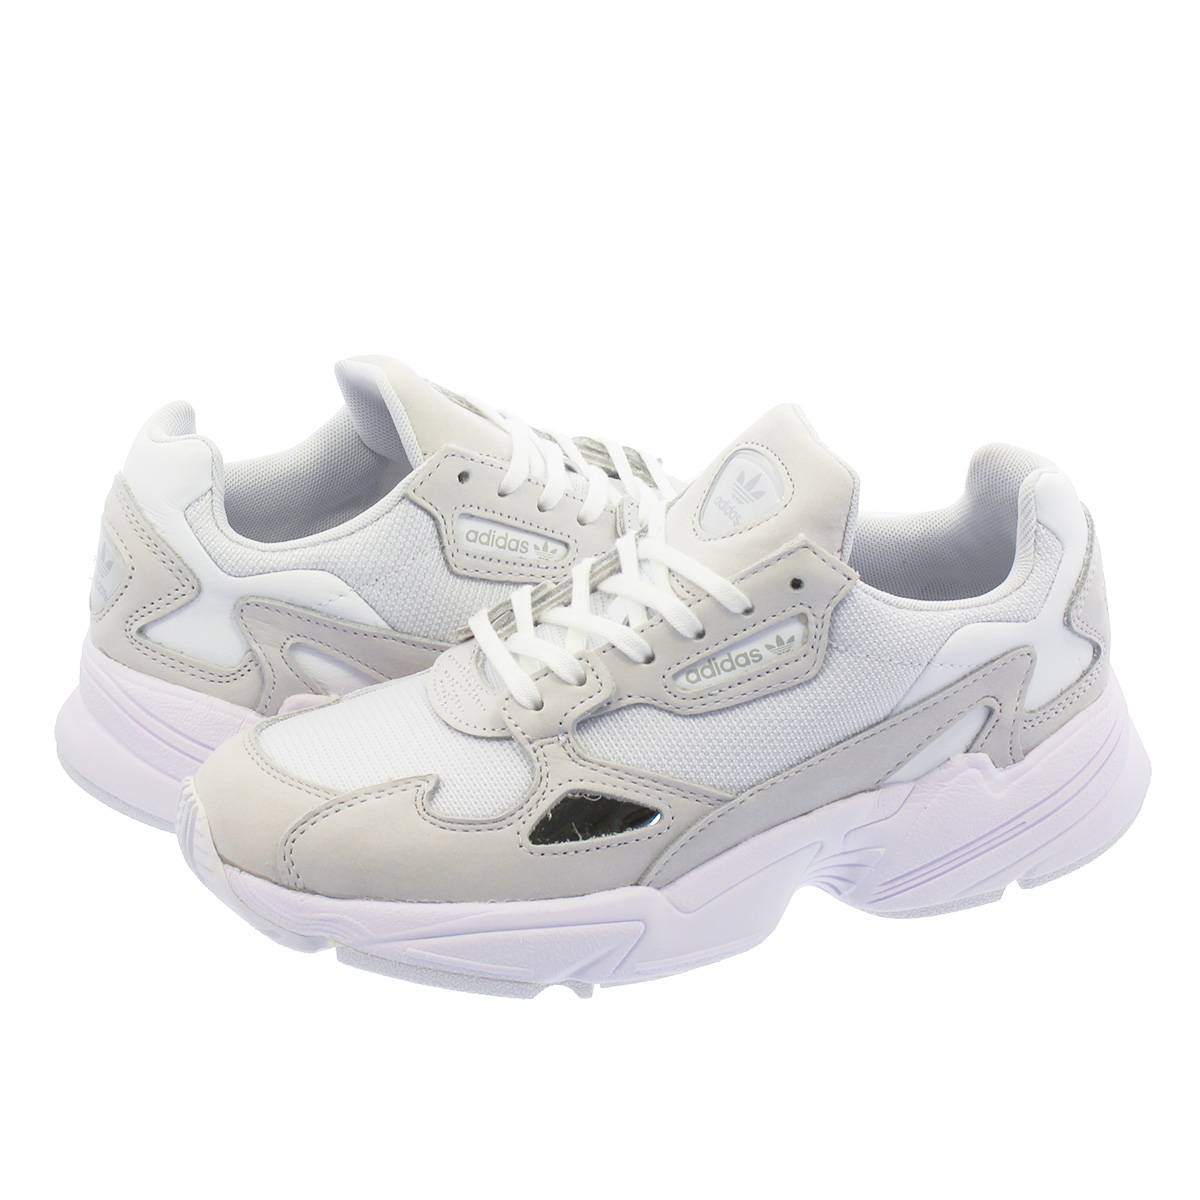 save off ce483 a42fc ... good adidas adidasfalcon w adidas adidas falcon women running white  crystal white b28128 891a8 5bf9c